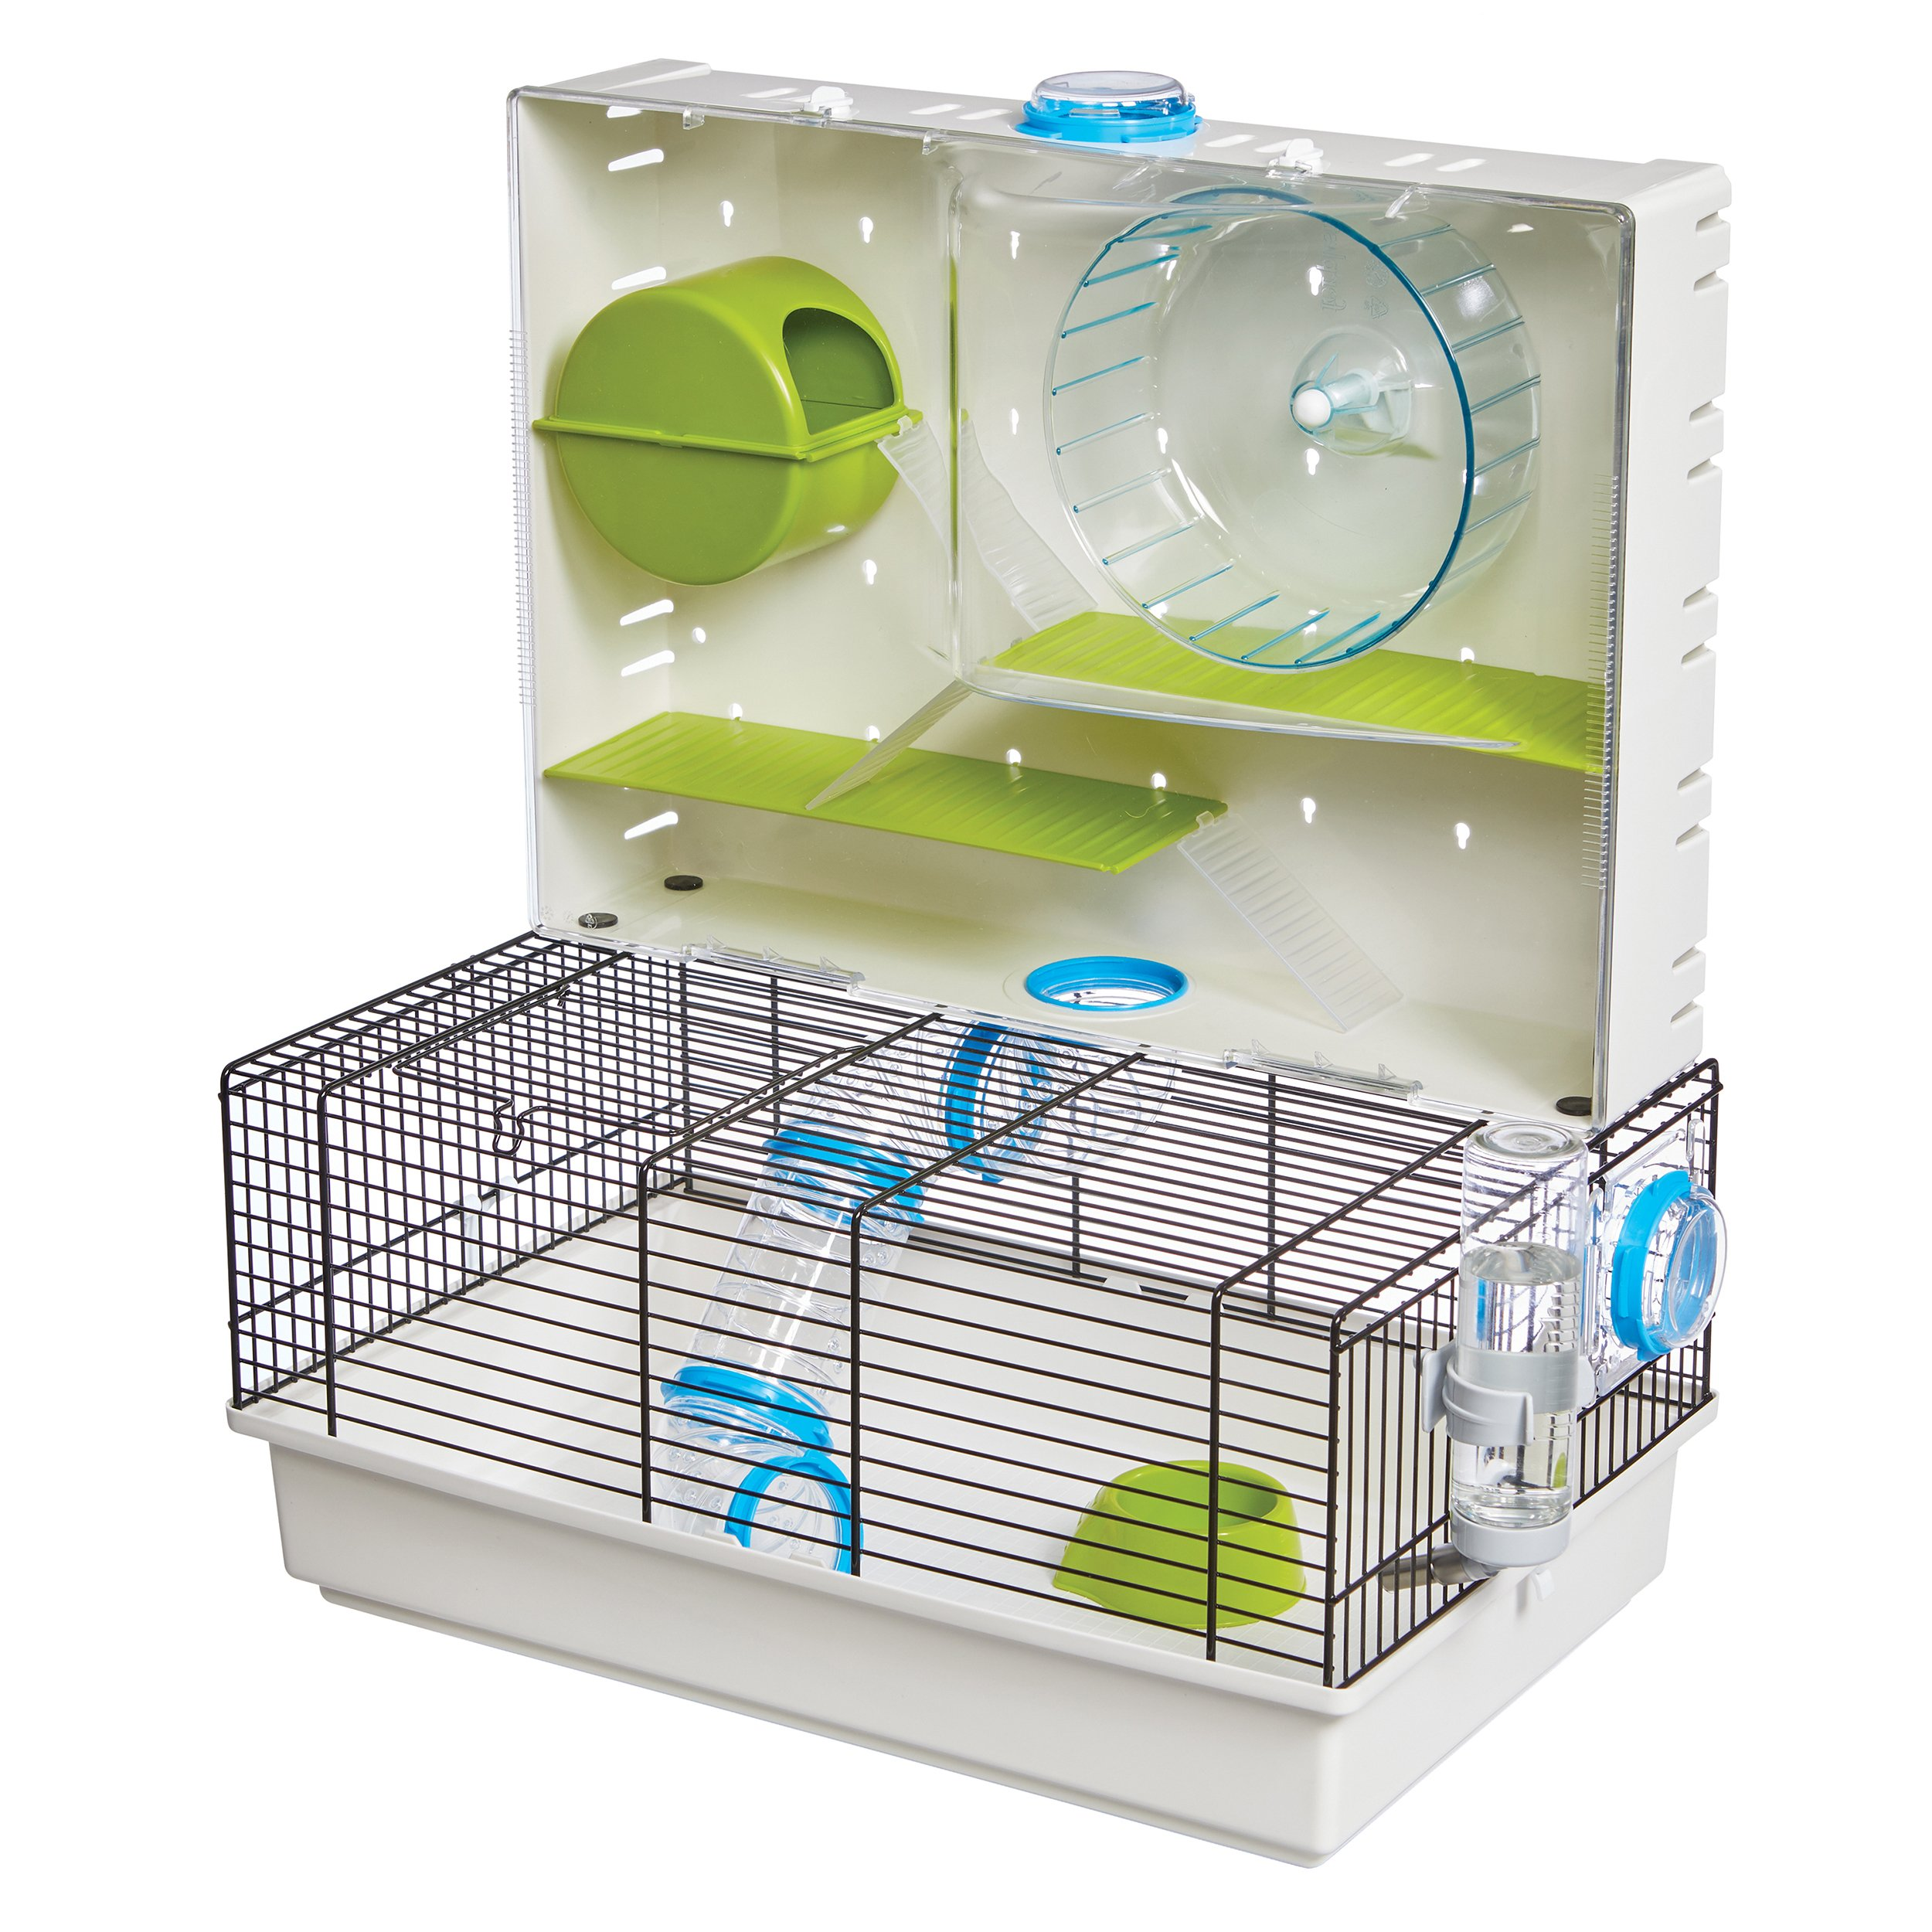 Hamster Cage | Awesome Arcade Hamster Home | 18.11 x 11.61 x 21.26 Inch by MidWest Homes for Pets